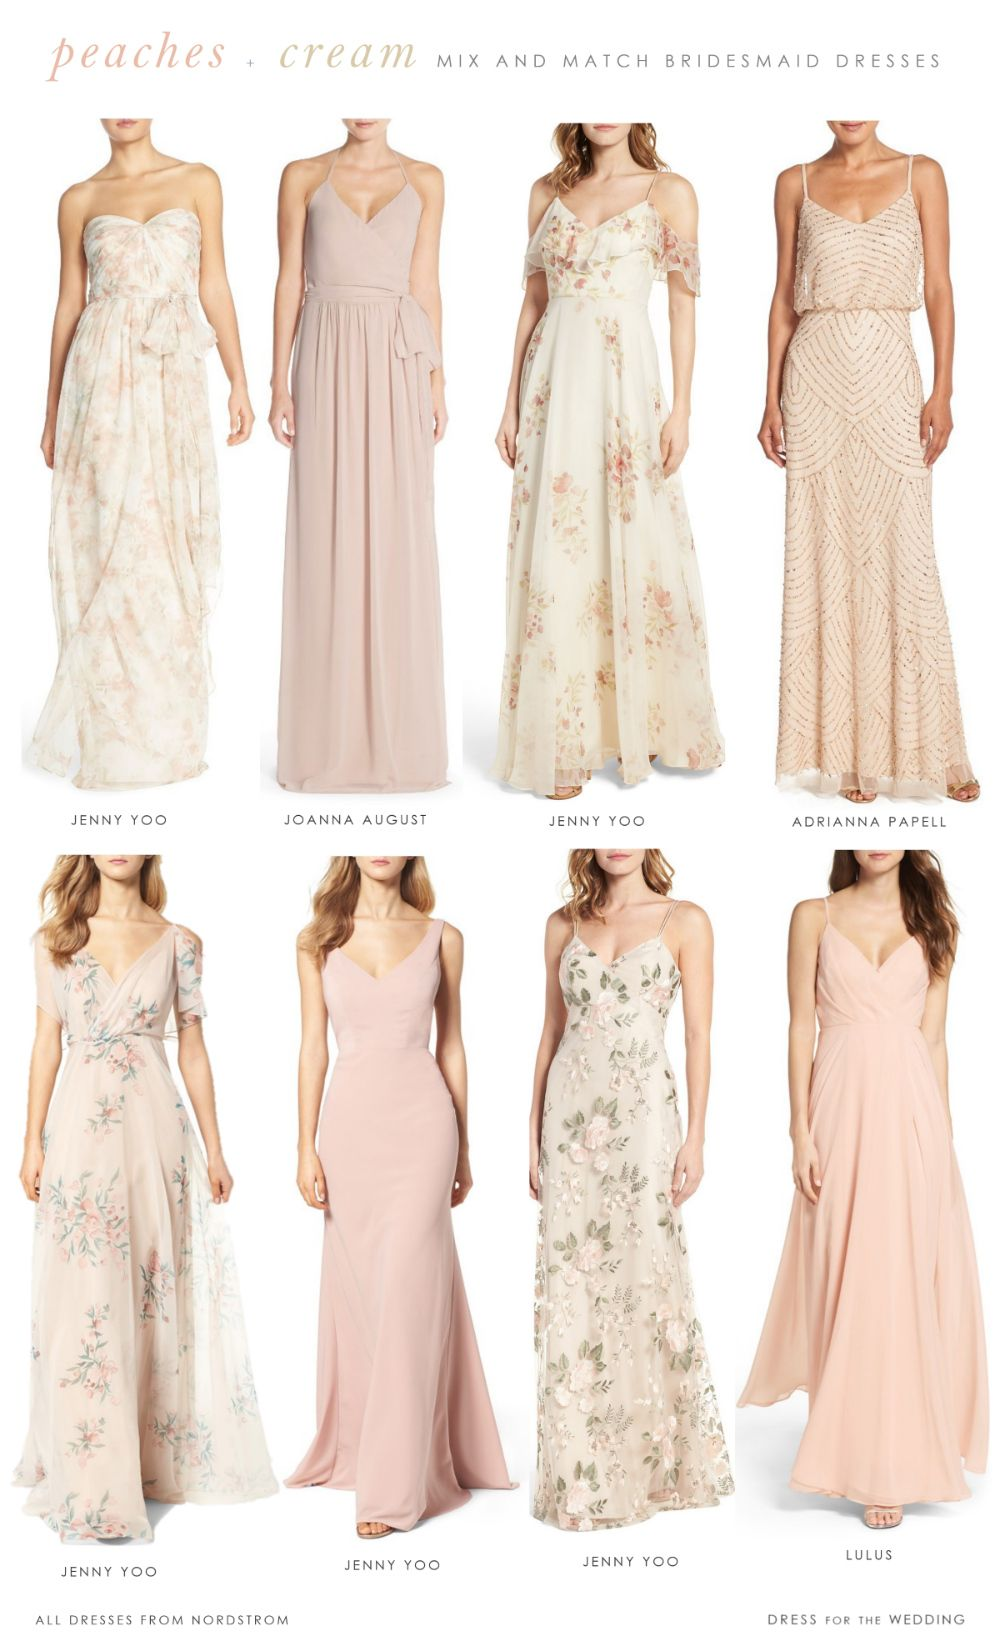 Floral Peach Blush And Cream Bridesmaid Dresses To Mix And Match Dress For The Wedding Blush Bridesmaid Dresses Neutral Bridesmaid Dresses Floral Bridesmaid Dresses